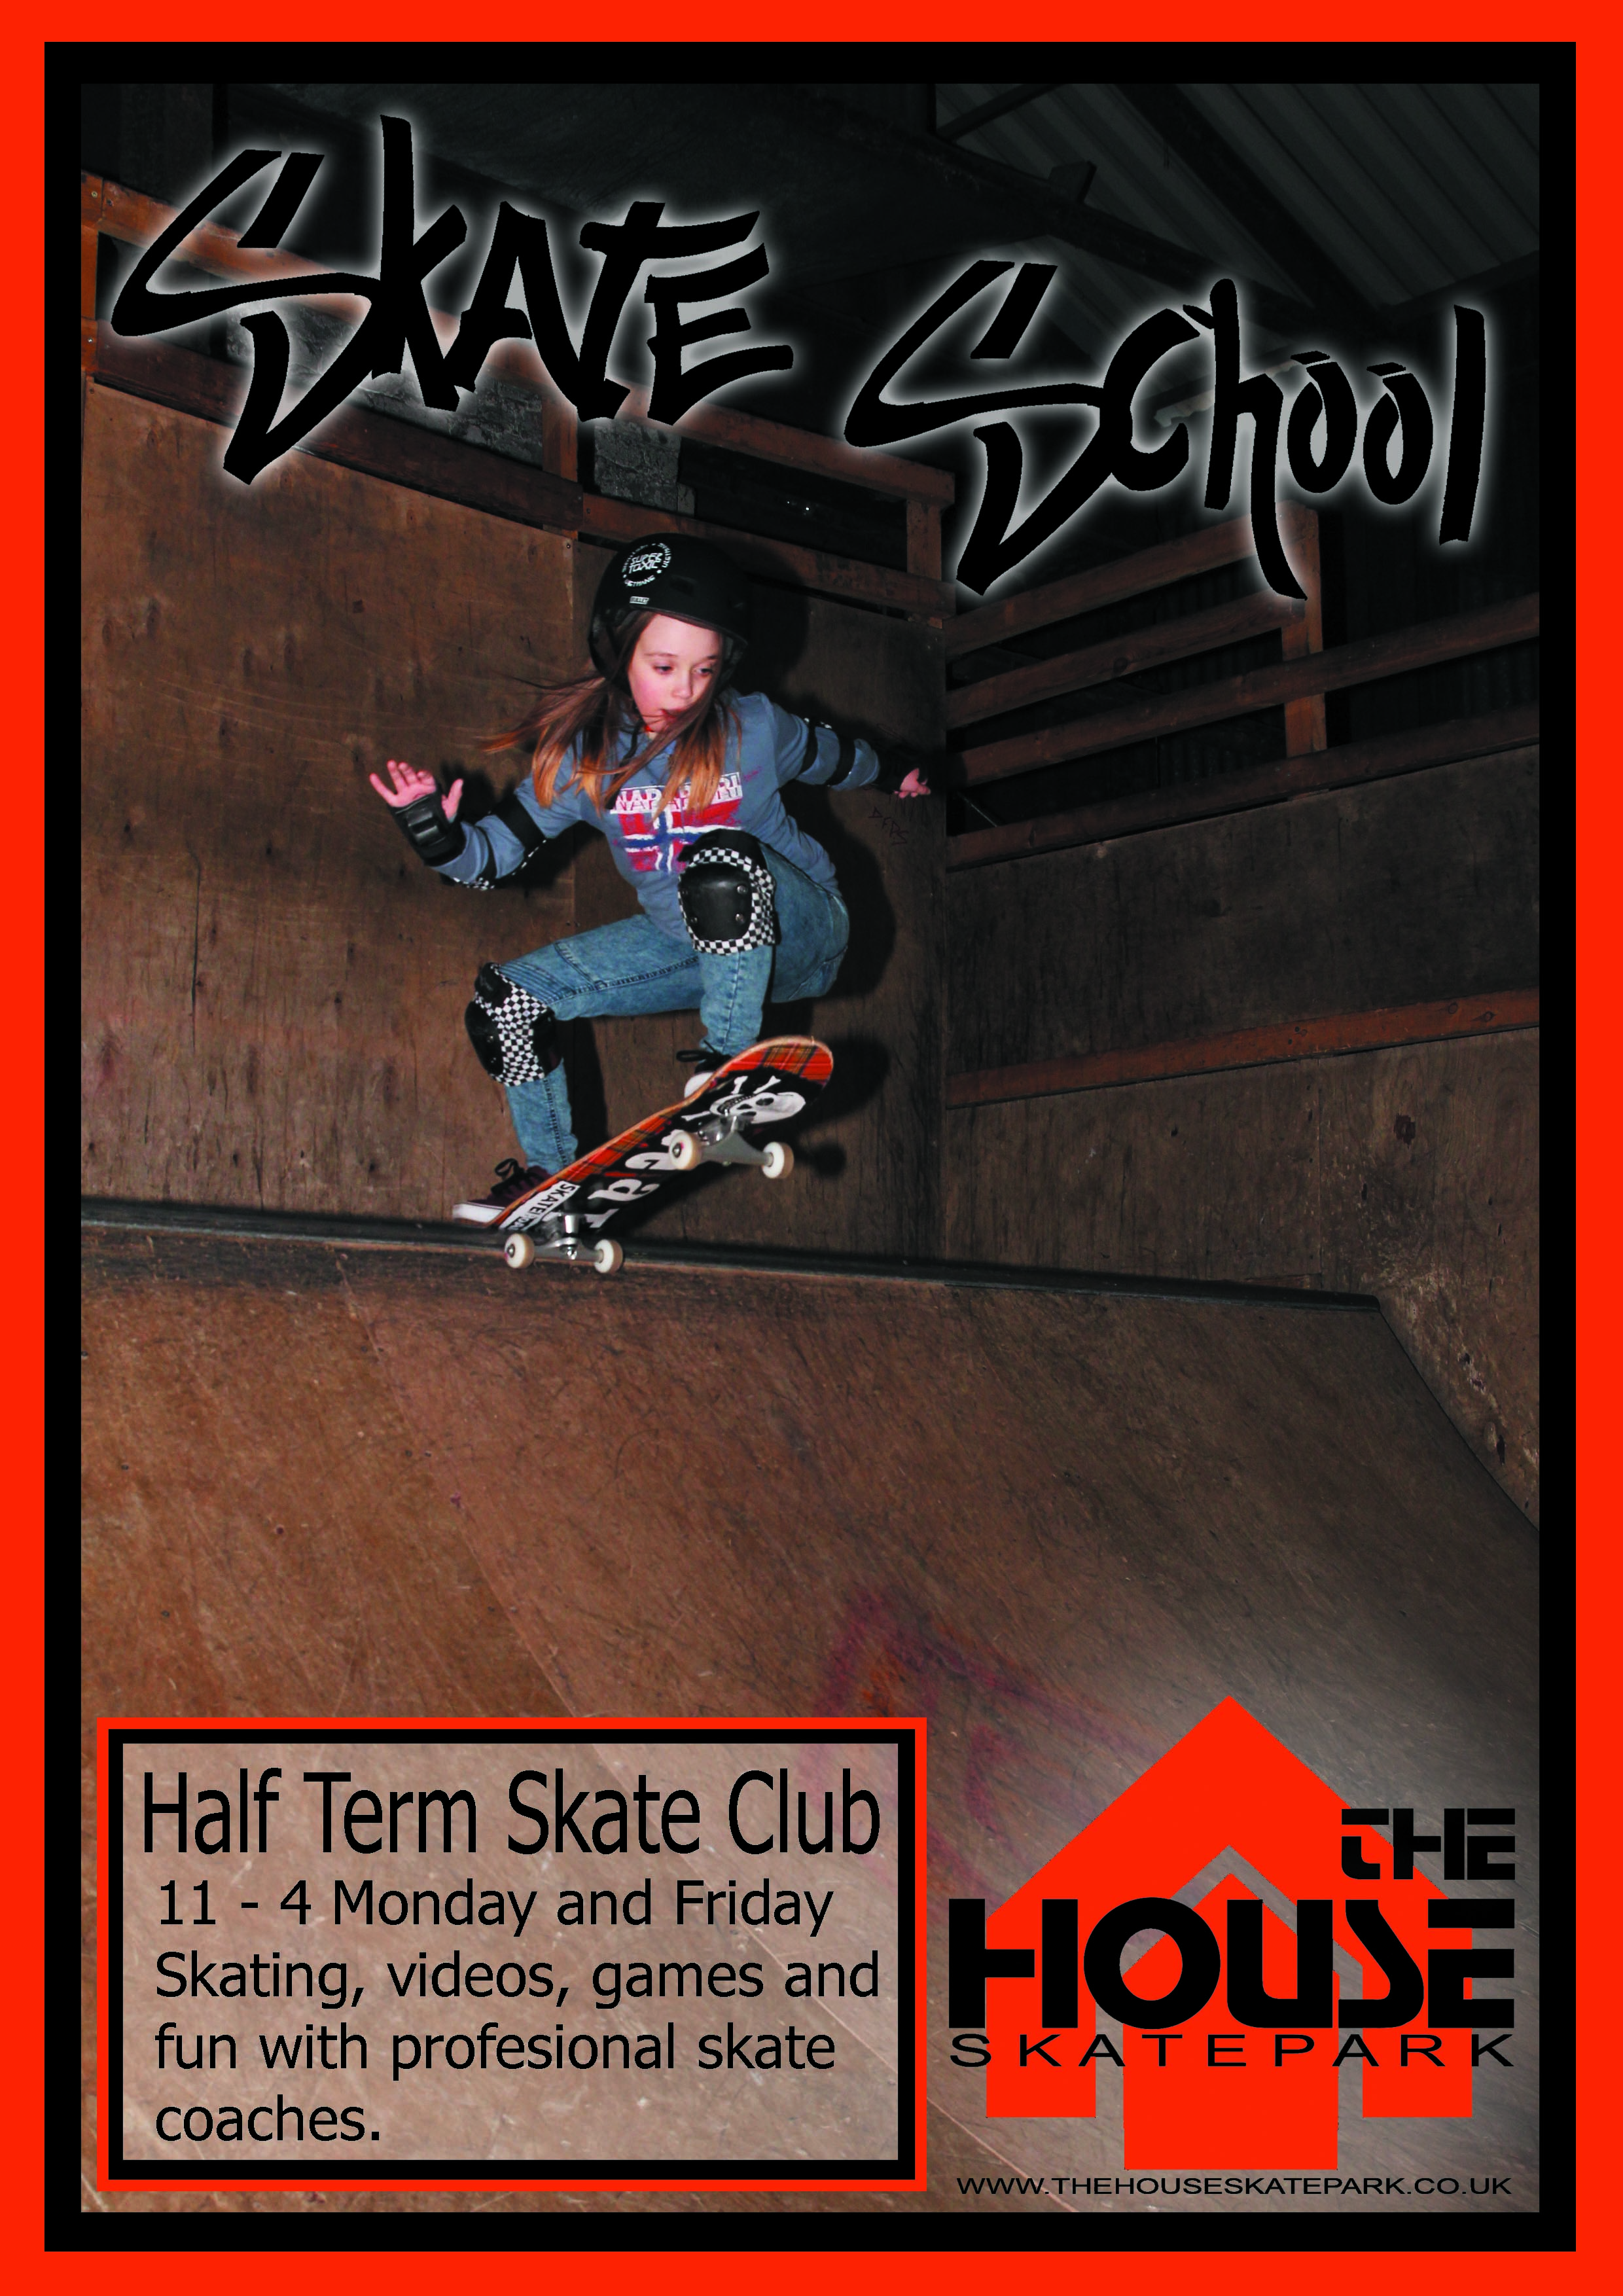 skate school half term flyer.jpg